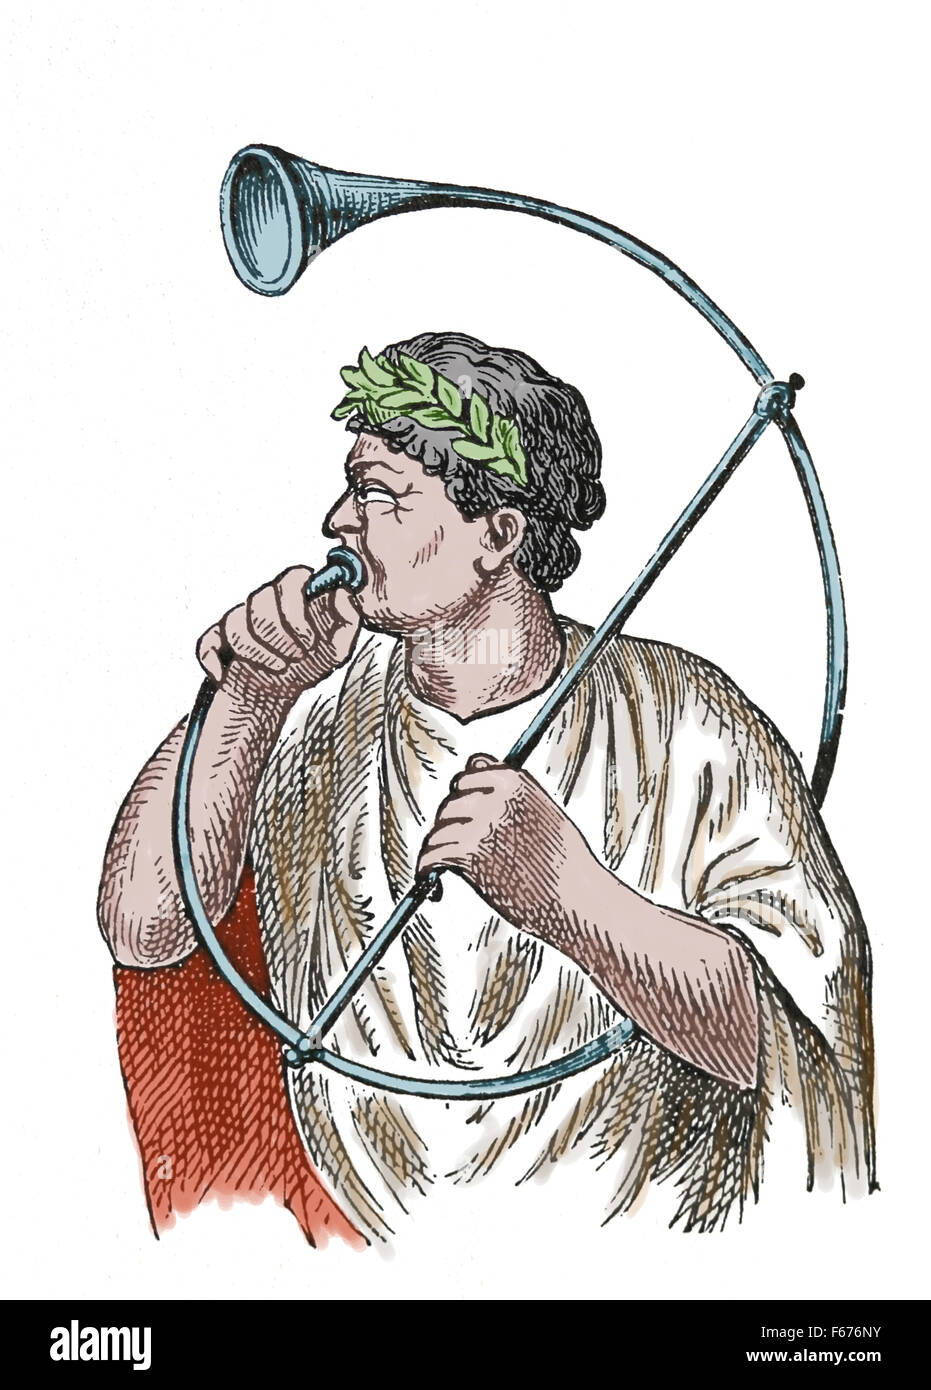 Roman military musical instrument. The Cornu. Engraving. 19th century. Color. - Stock Image